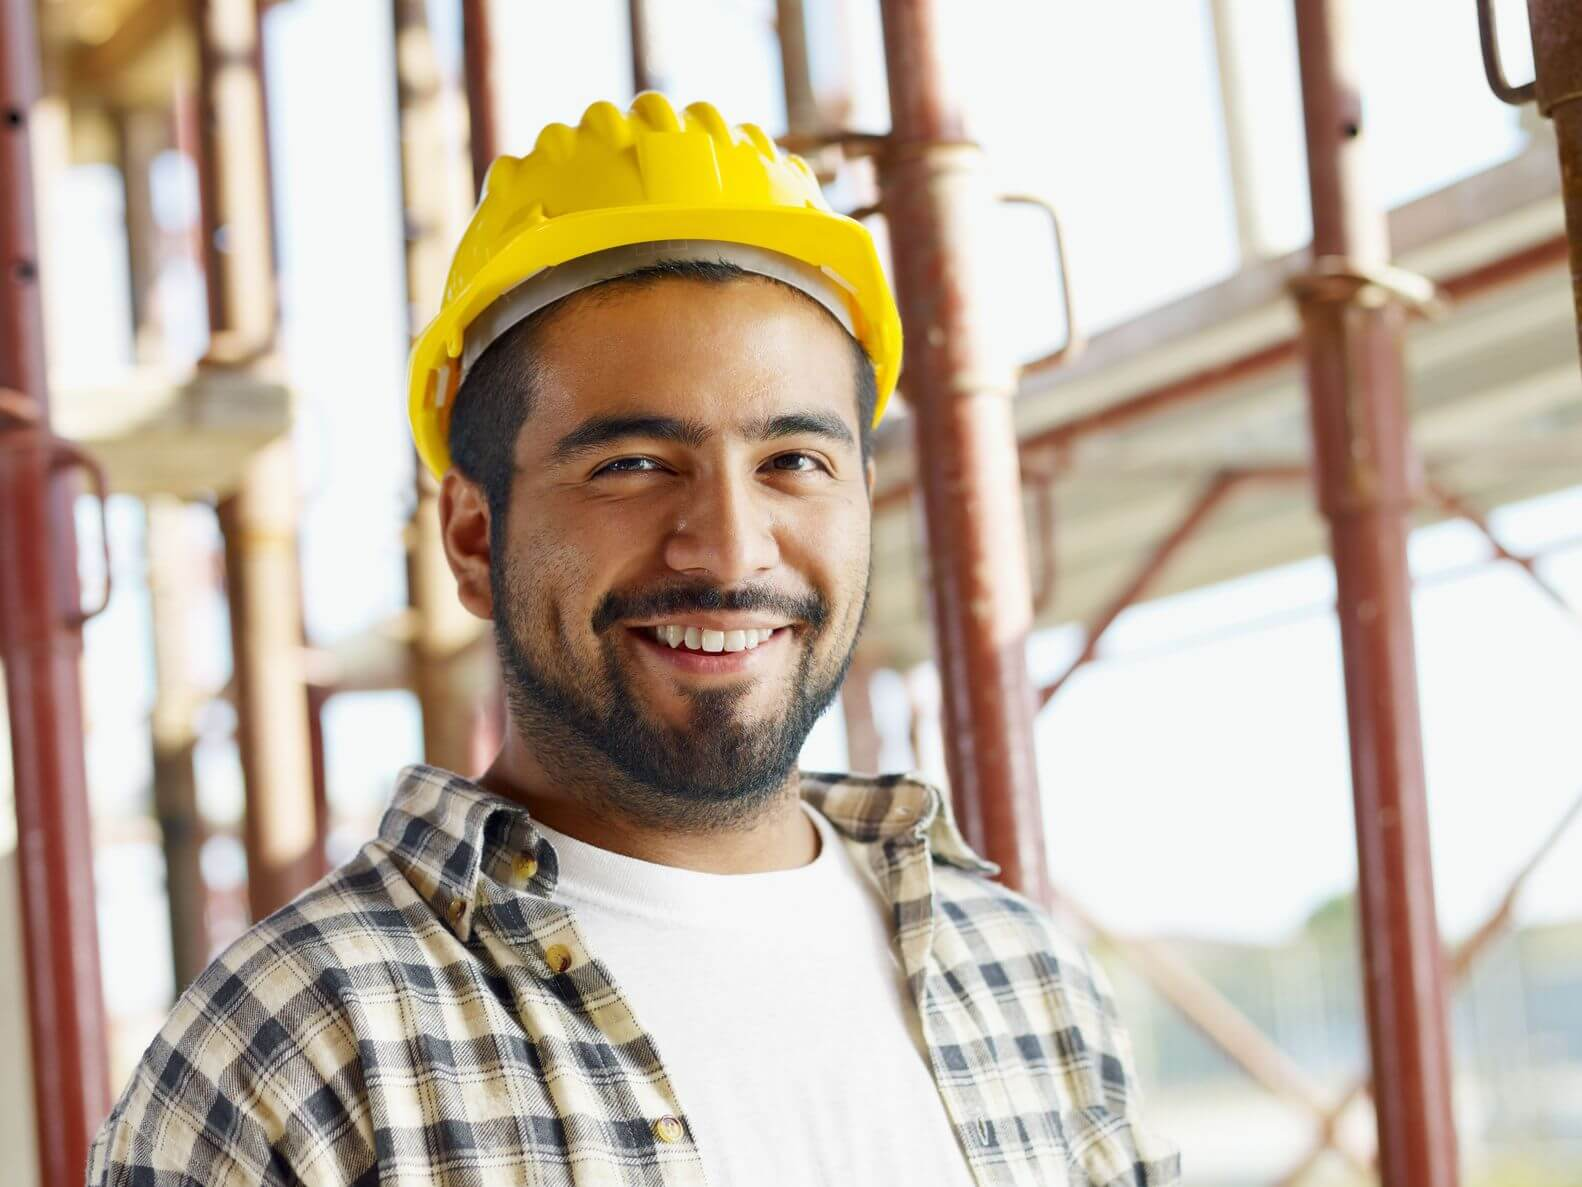 construction worker with yellow hat